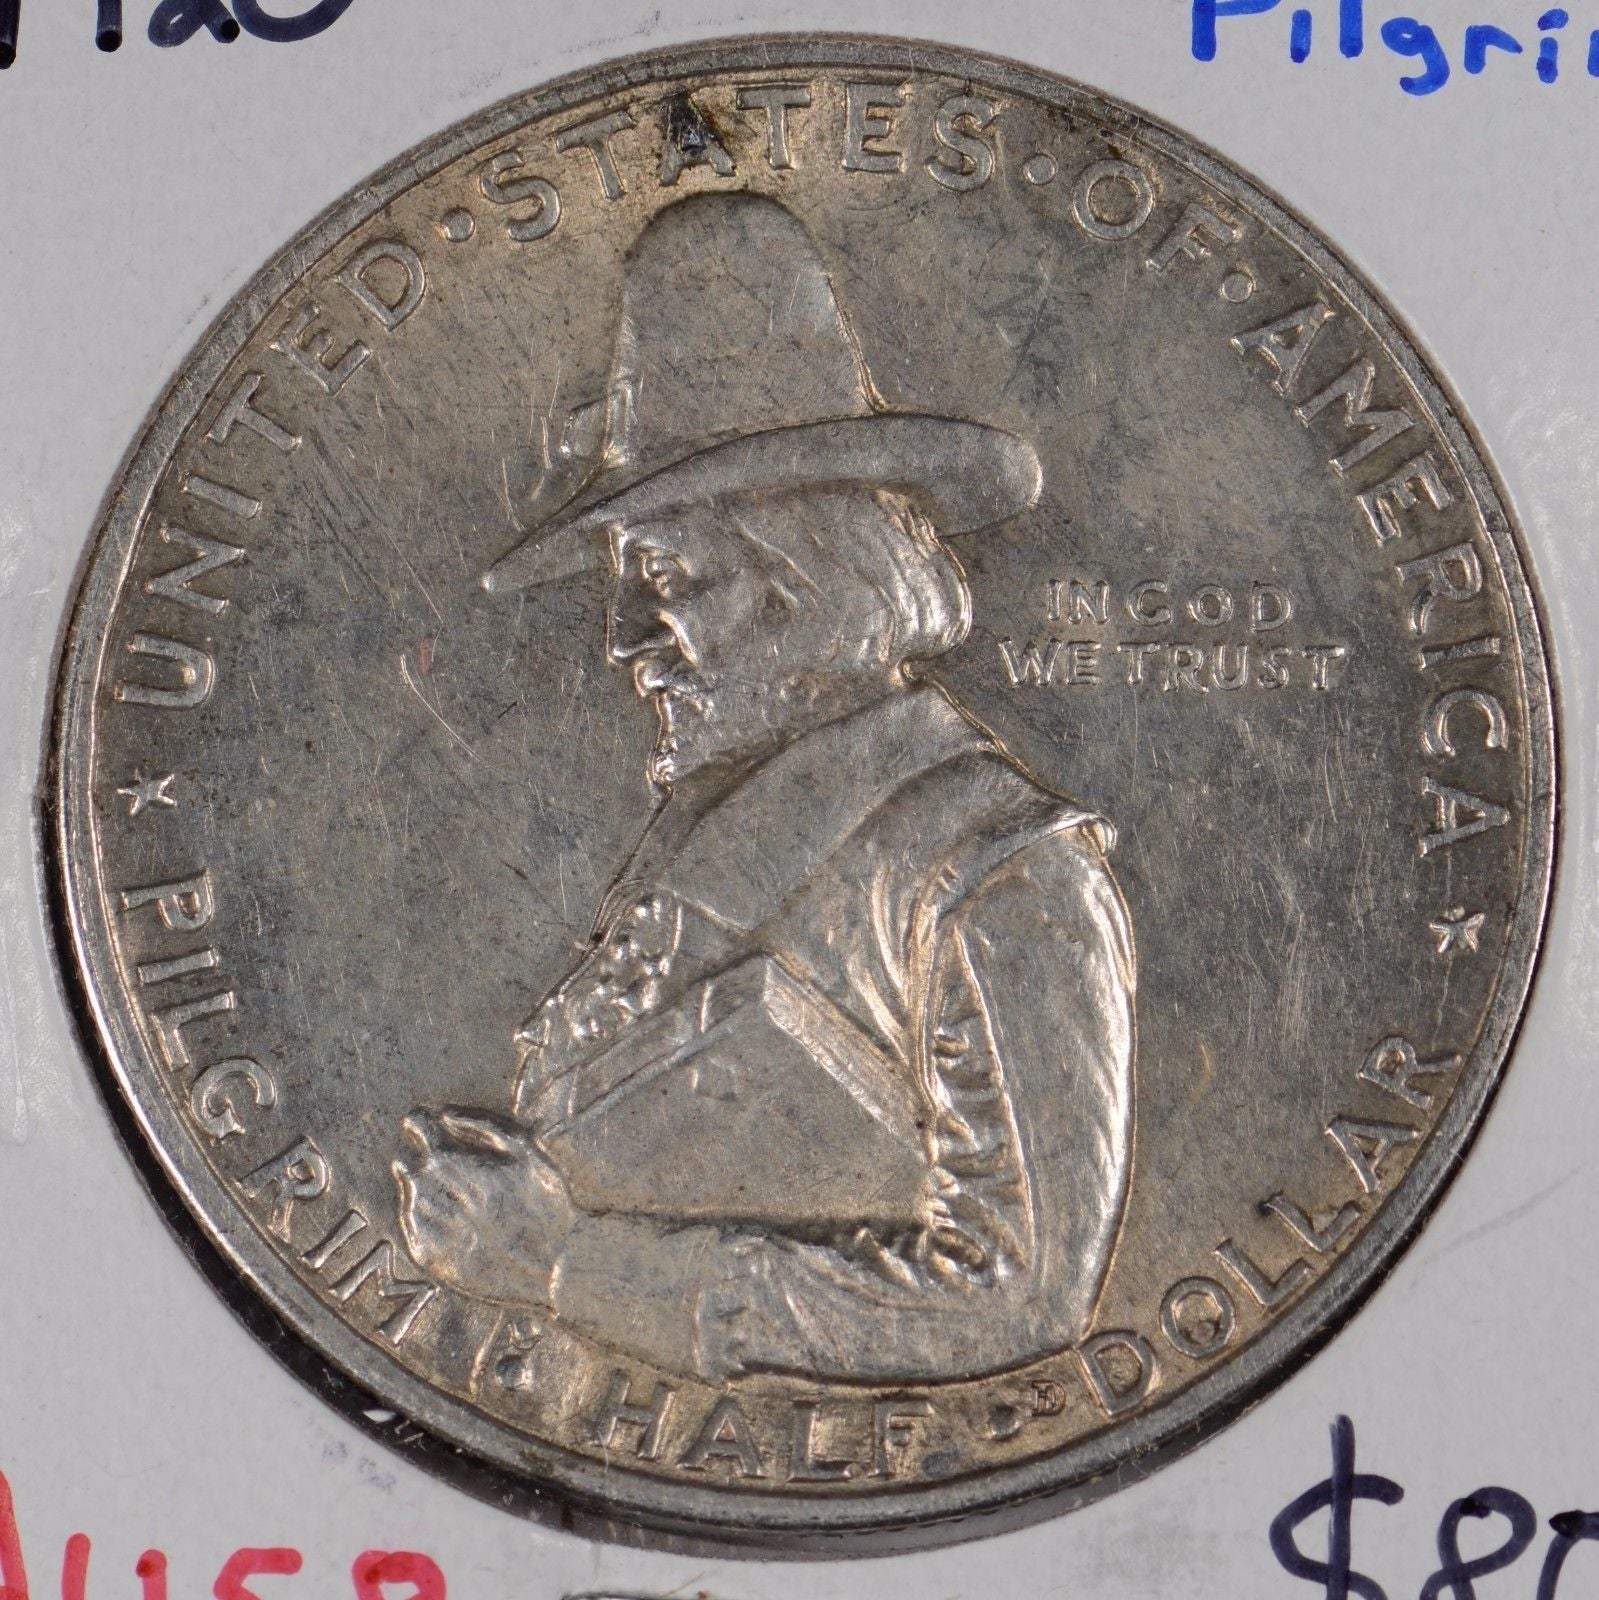 1920 Pilgrim Silver Commemorative Half Dollar About Uncirculated #164988